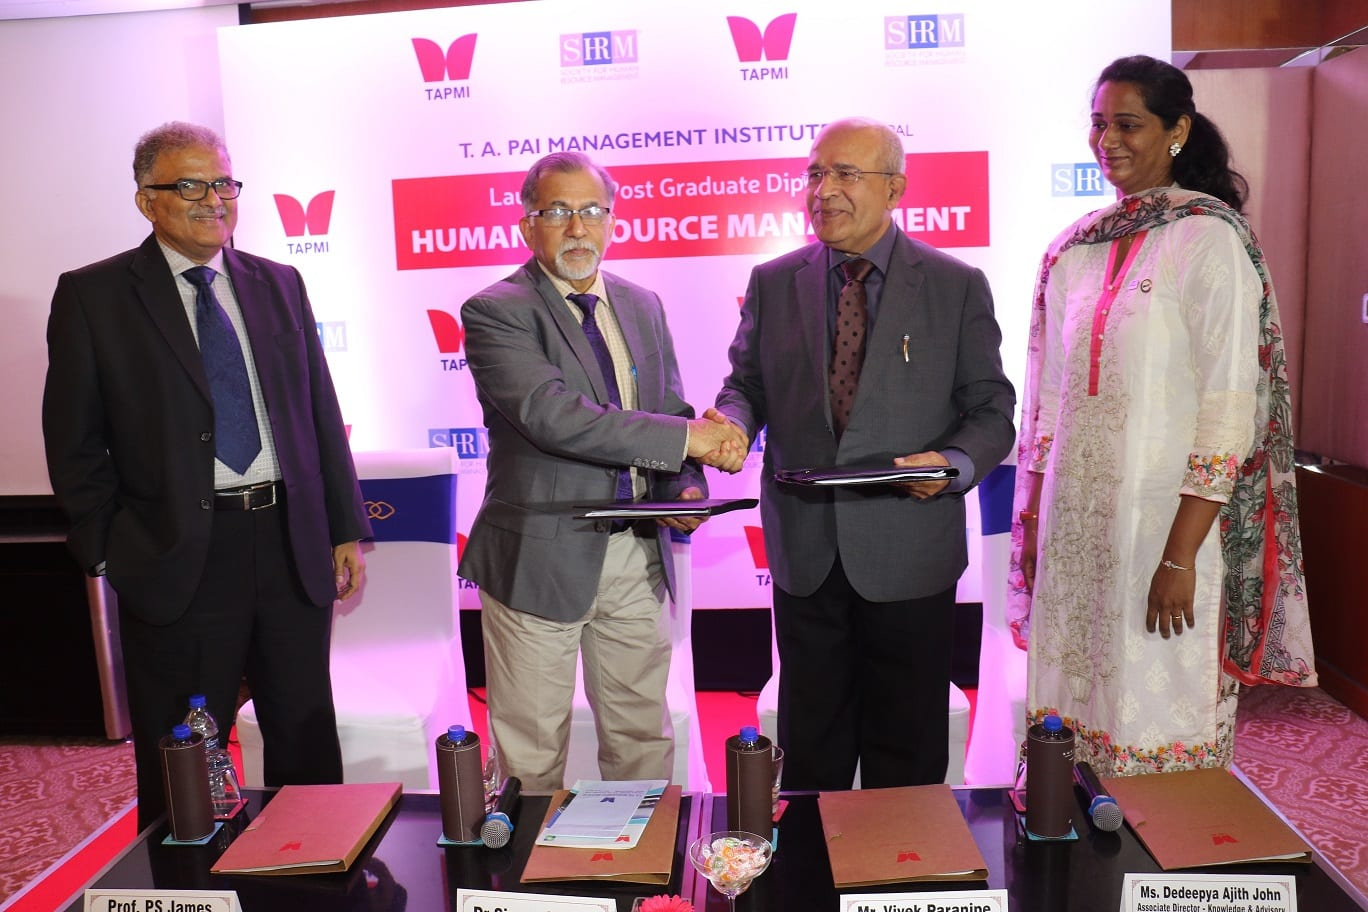 TAPMI In collaboration with Society for Human Resources (SHRM) launches Postgraduate program in Human Resources Management